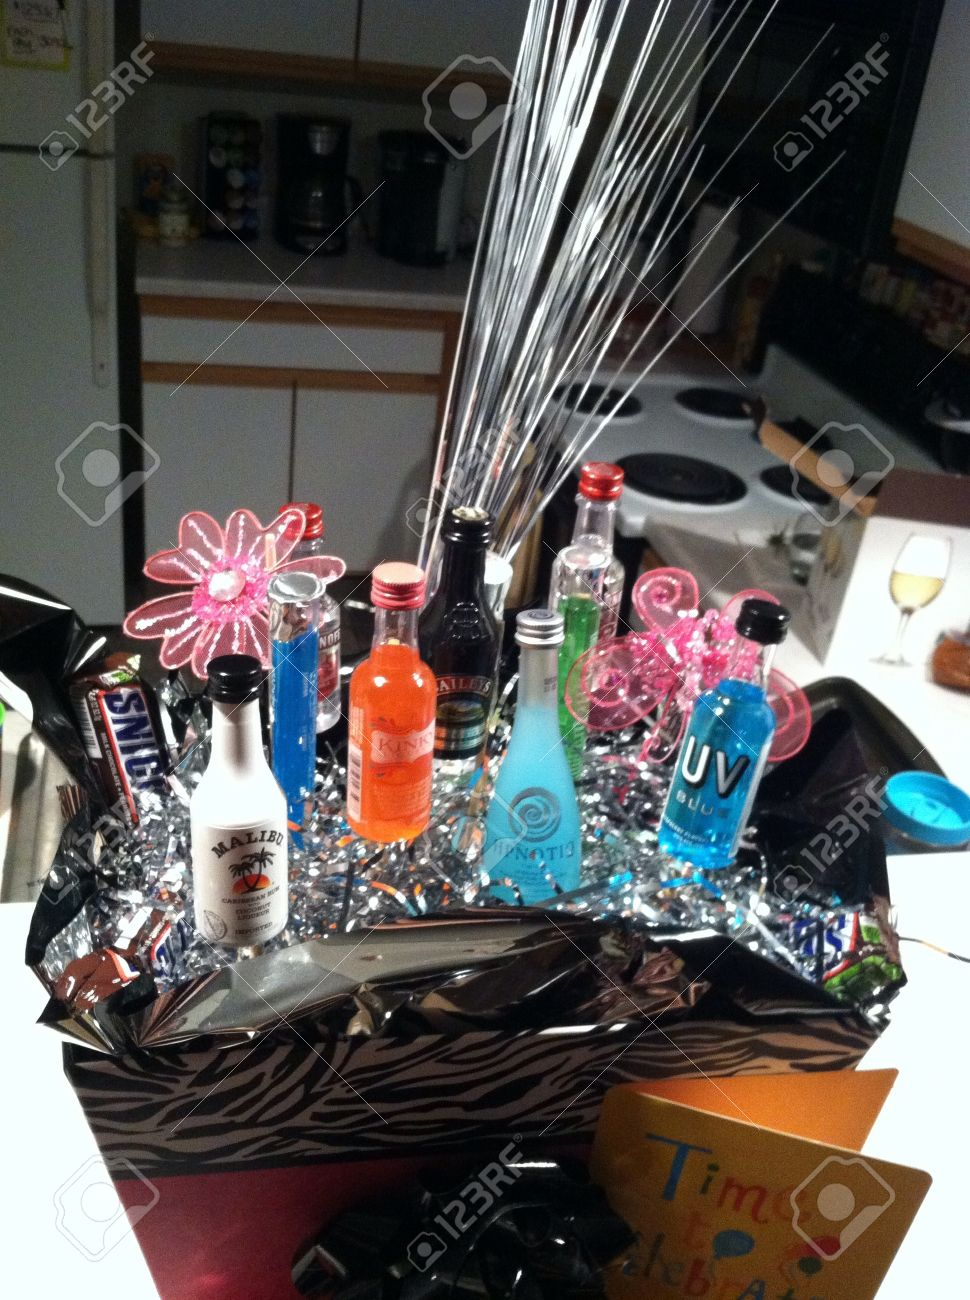 21st Birthday Gift Basket With Alcohol Bottles Stock Photo Picture And Royalty Free Image Image 21832352